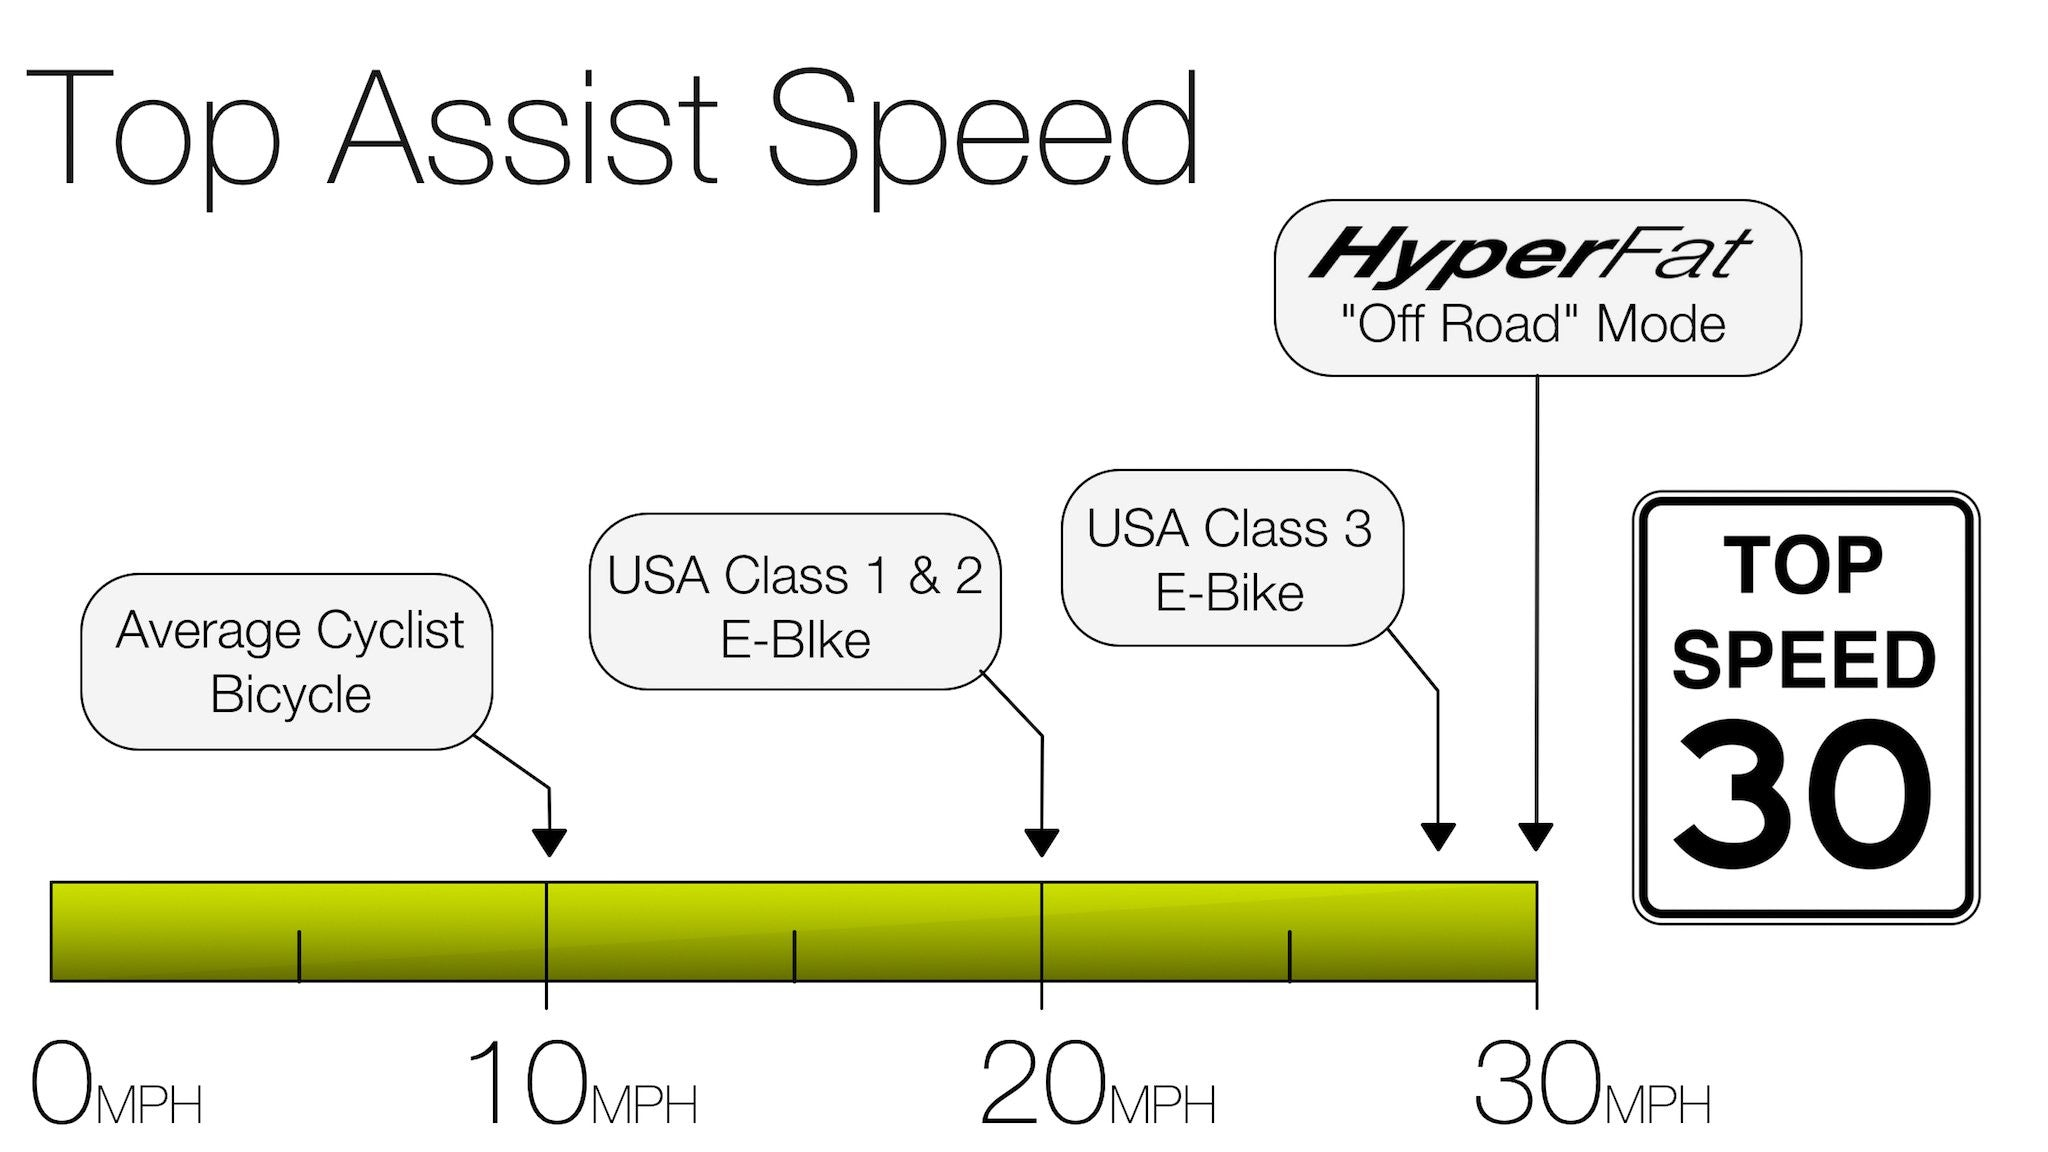 Top Pedal Assist Speed